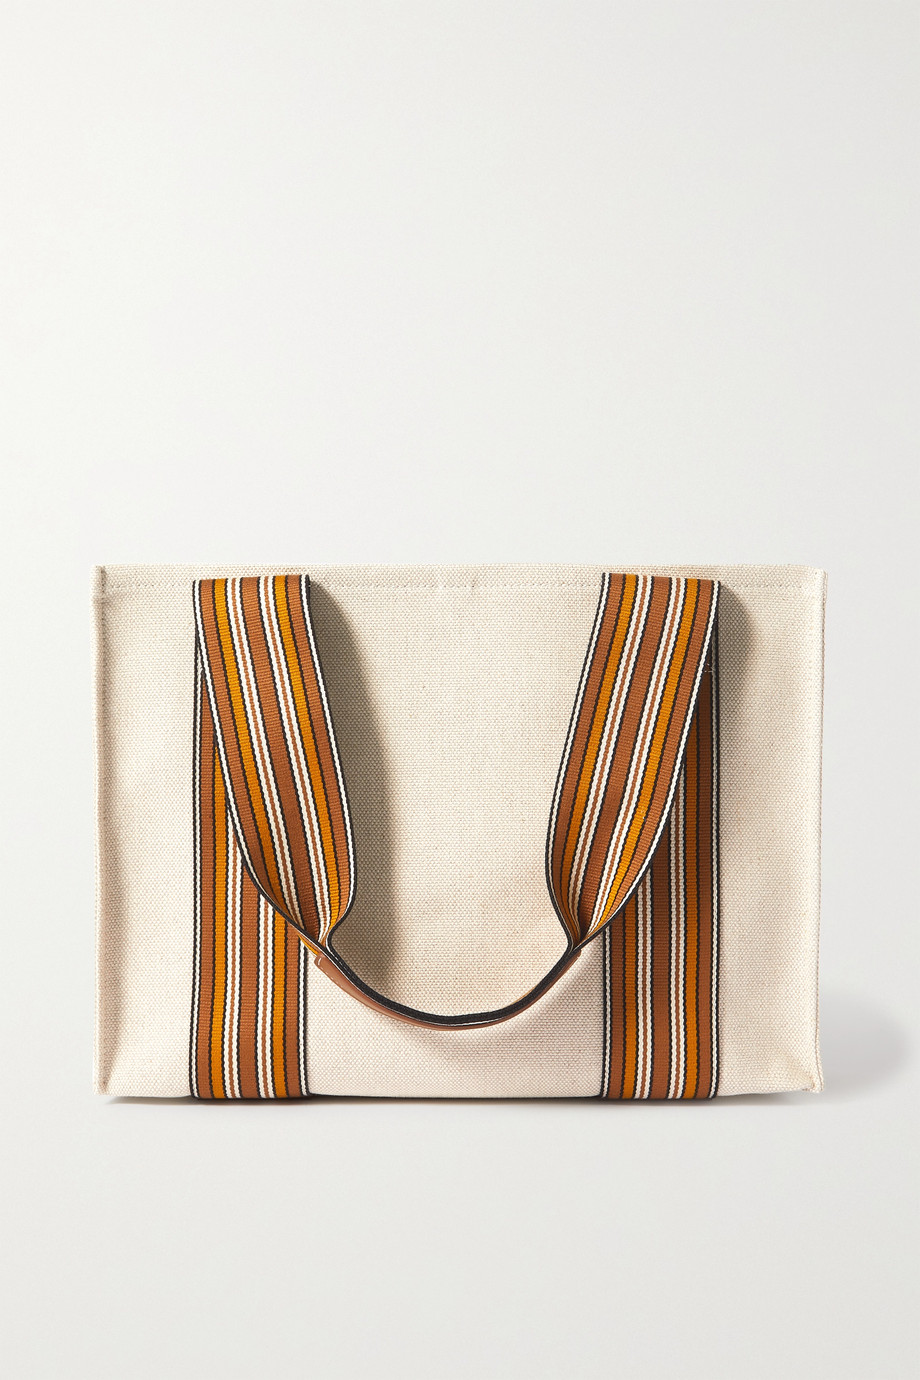 Loro Piana Suitcase small leather-trimmed striped canvas tote